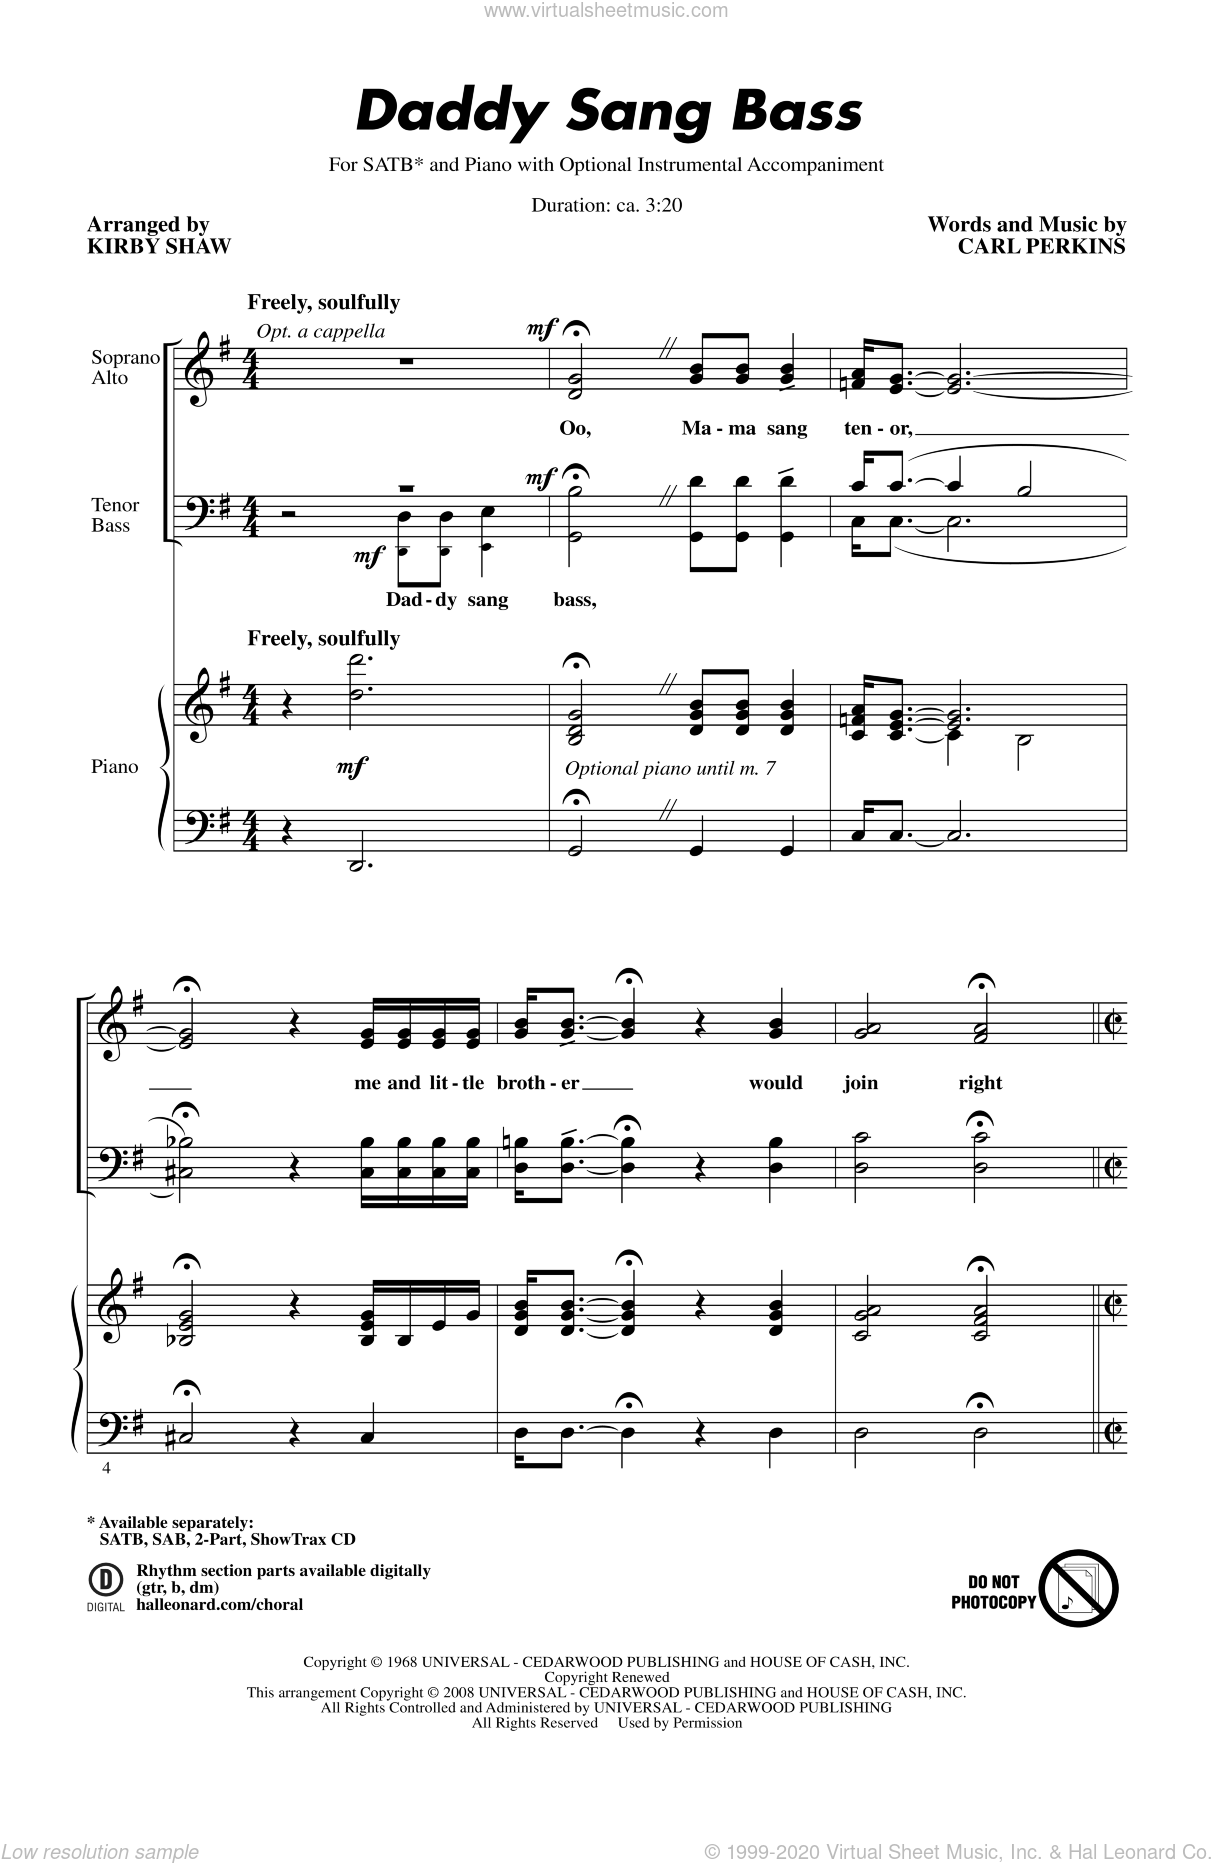 Daddy Sang Bass sheet music for choir and piano (SATB) by Kirby Shaw and Carl Perkins. Score Image Preview.